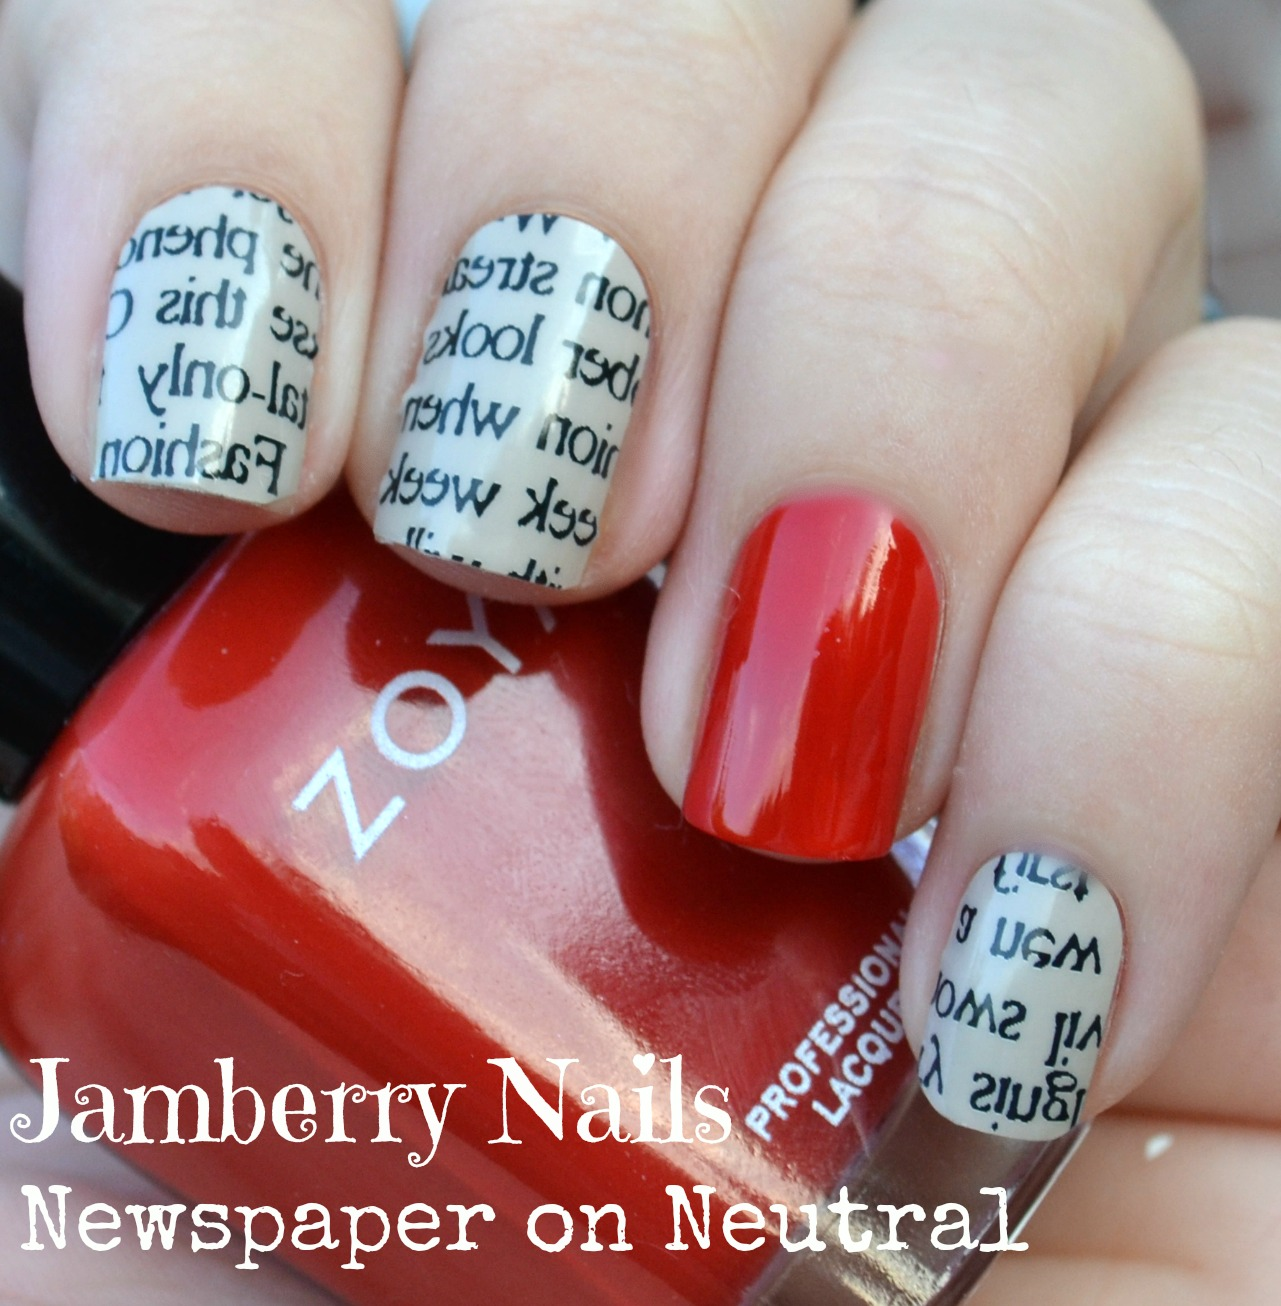 nails views: Jamberry Nails Newspaper on Neutral